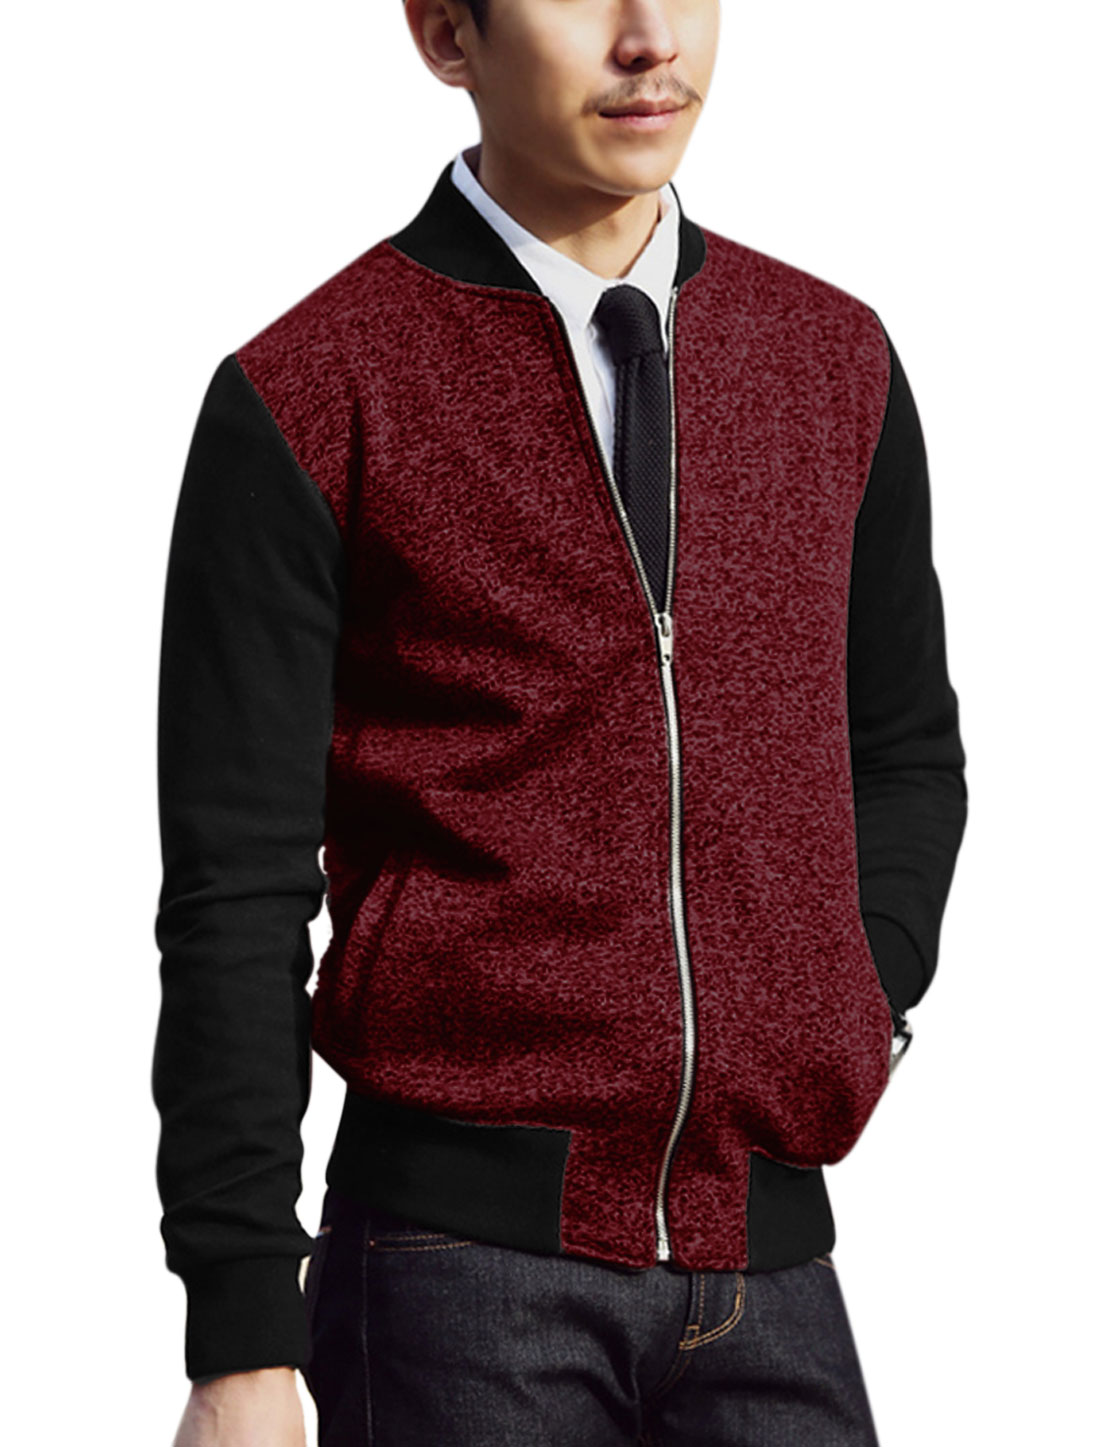 Men Contrast Color Zip Up Slant Pockets Leisure Jacket Burgundy Black M